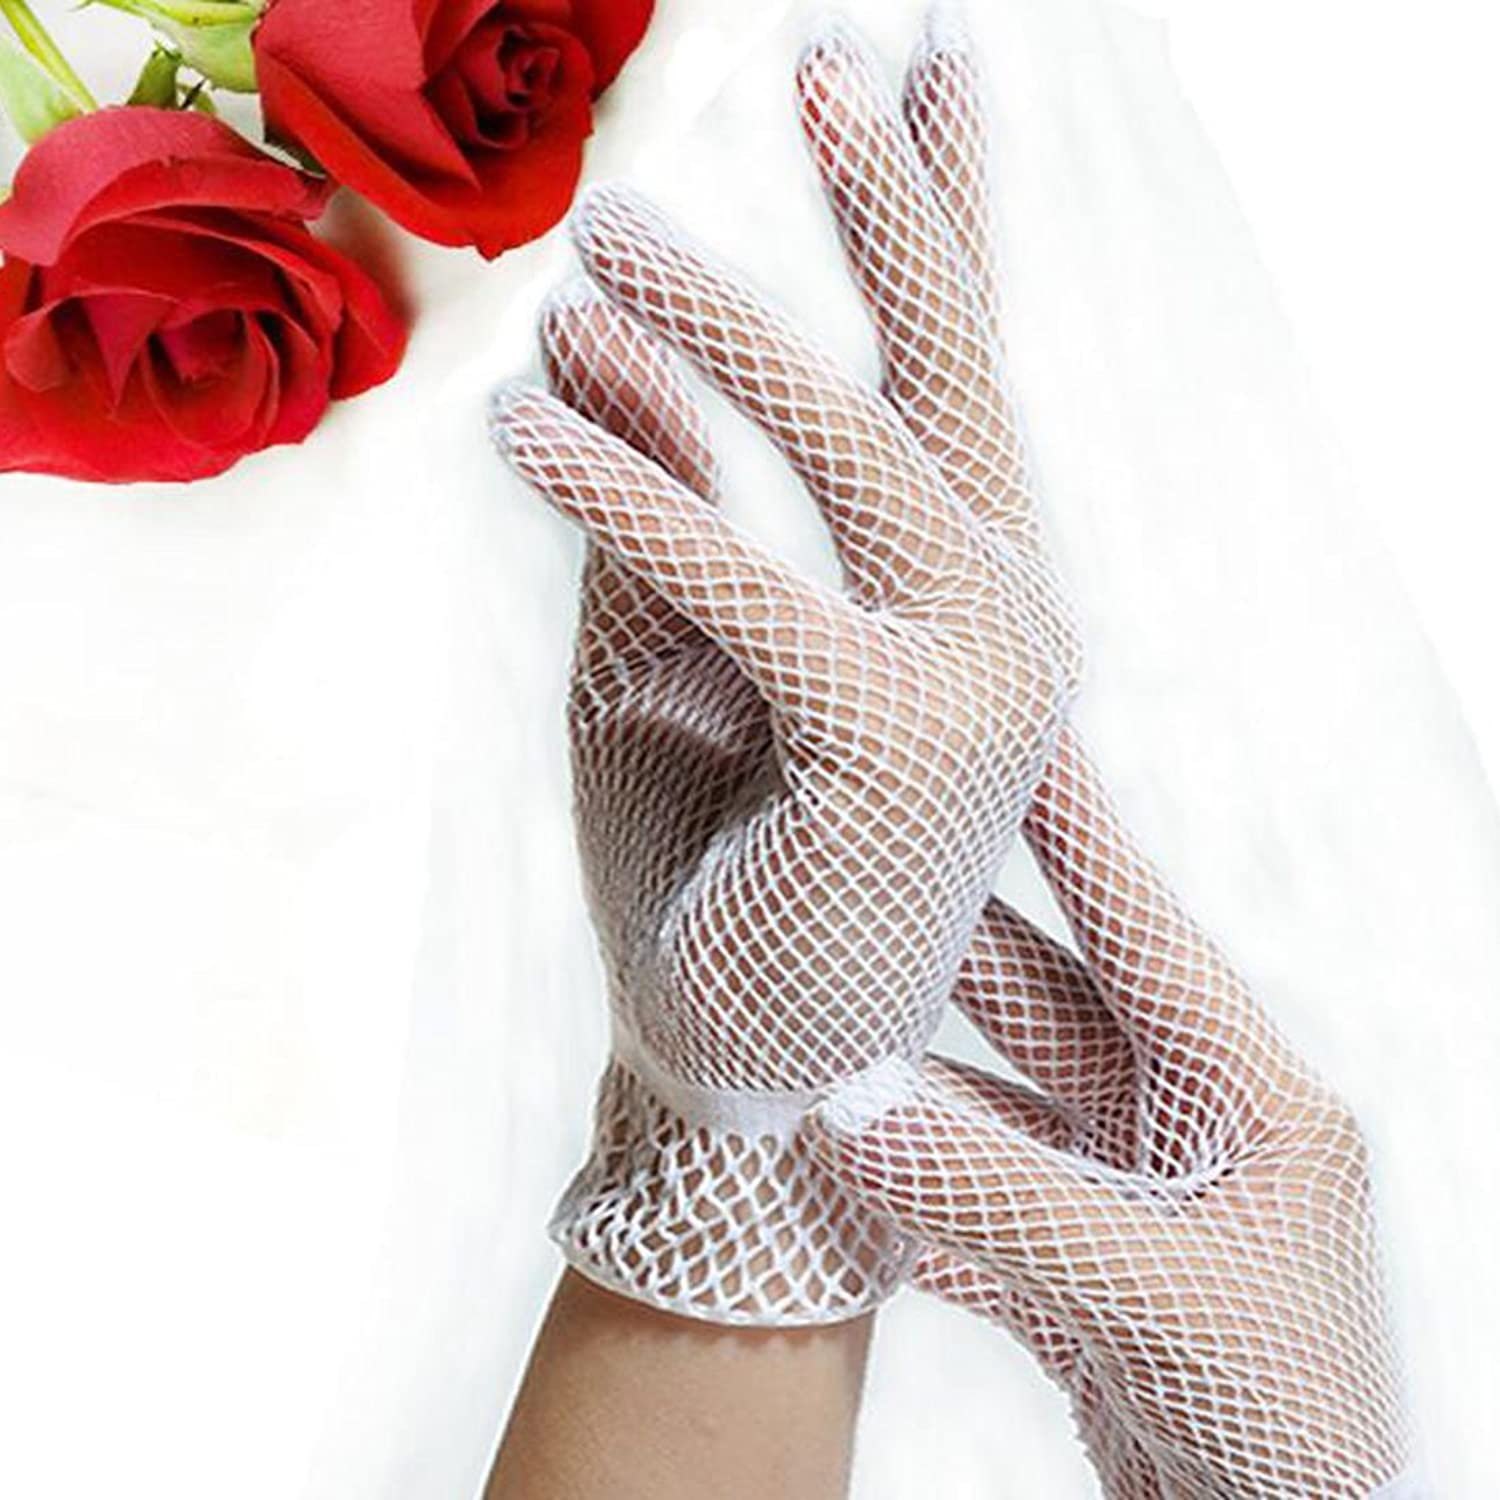 5 Essential Victorian Costume Accessories 1 Pair Fishnet Mesh Gloves Fashion Women Gloves Summer UV Protection Lace Glove White $2.11 AT vintagedancer.com